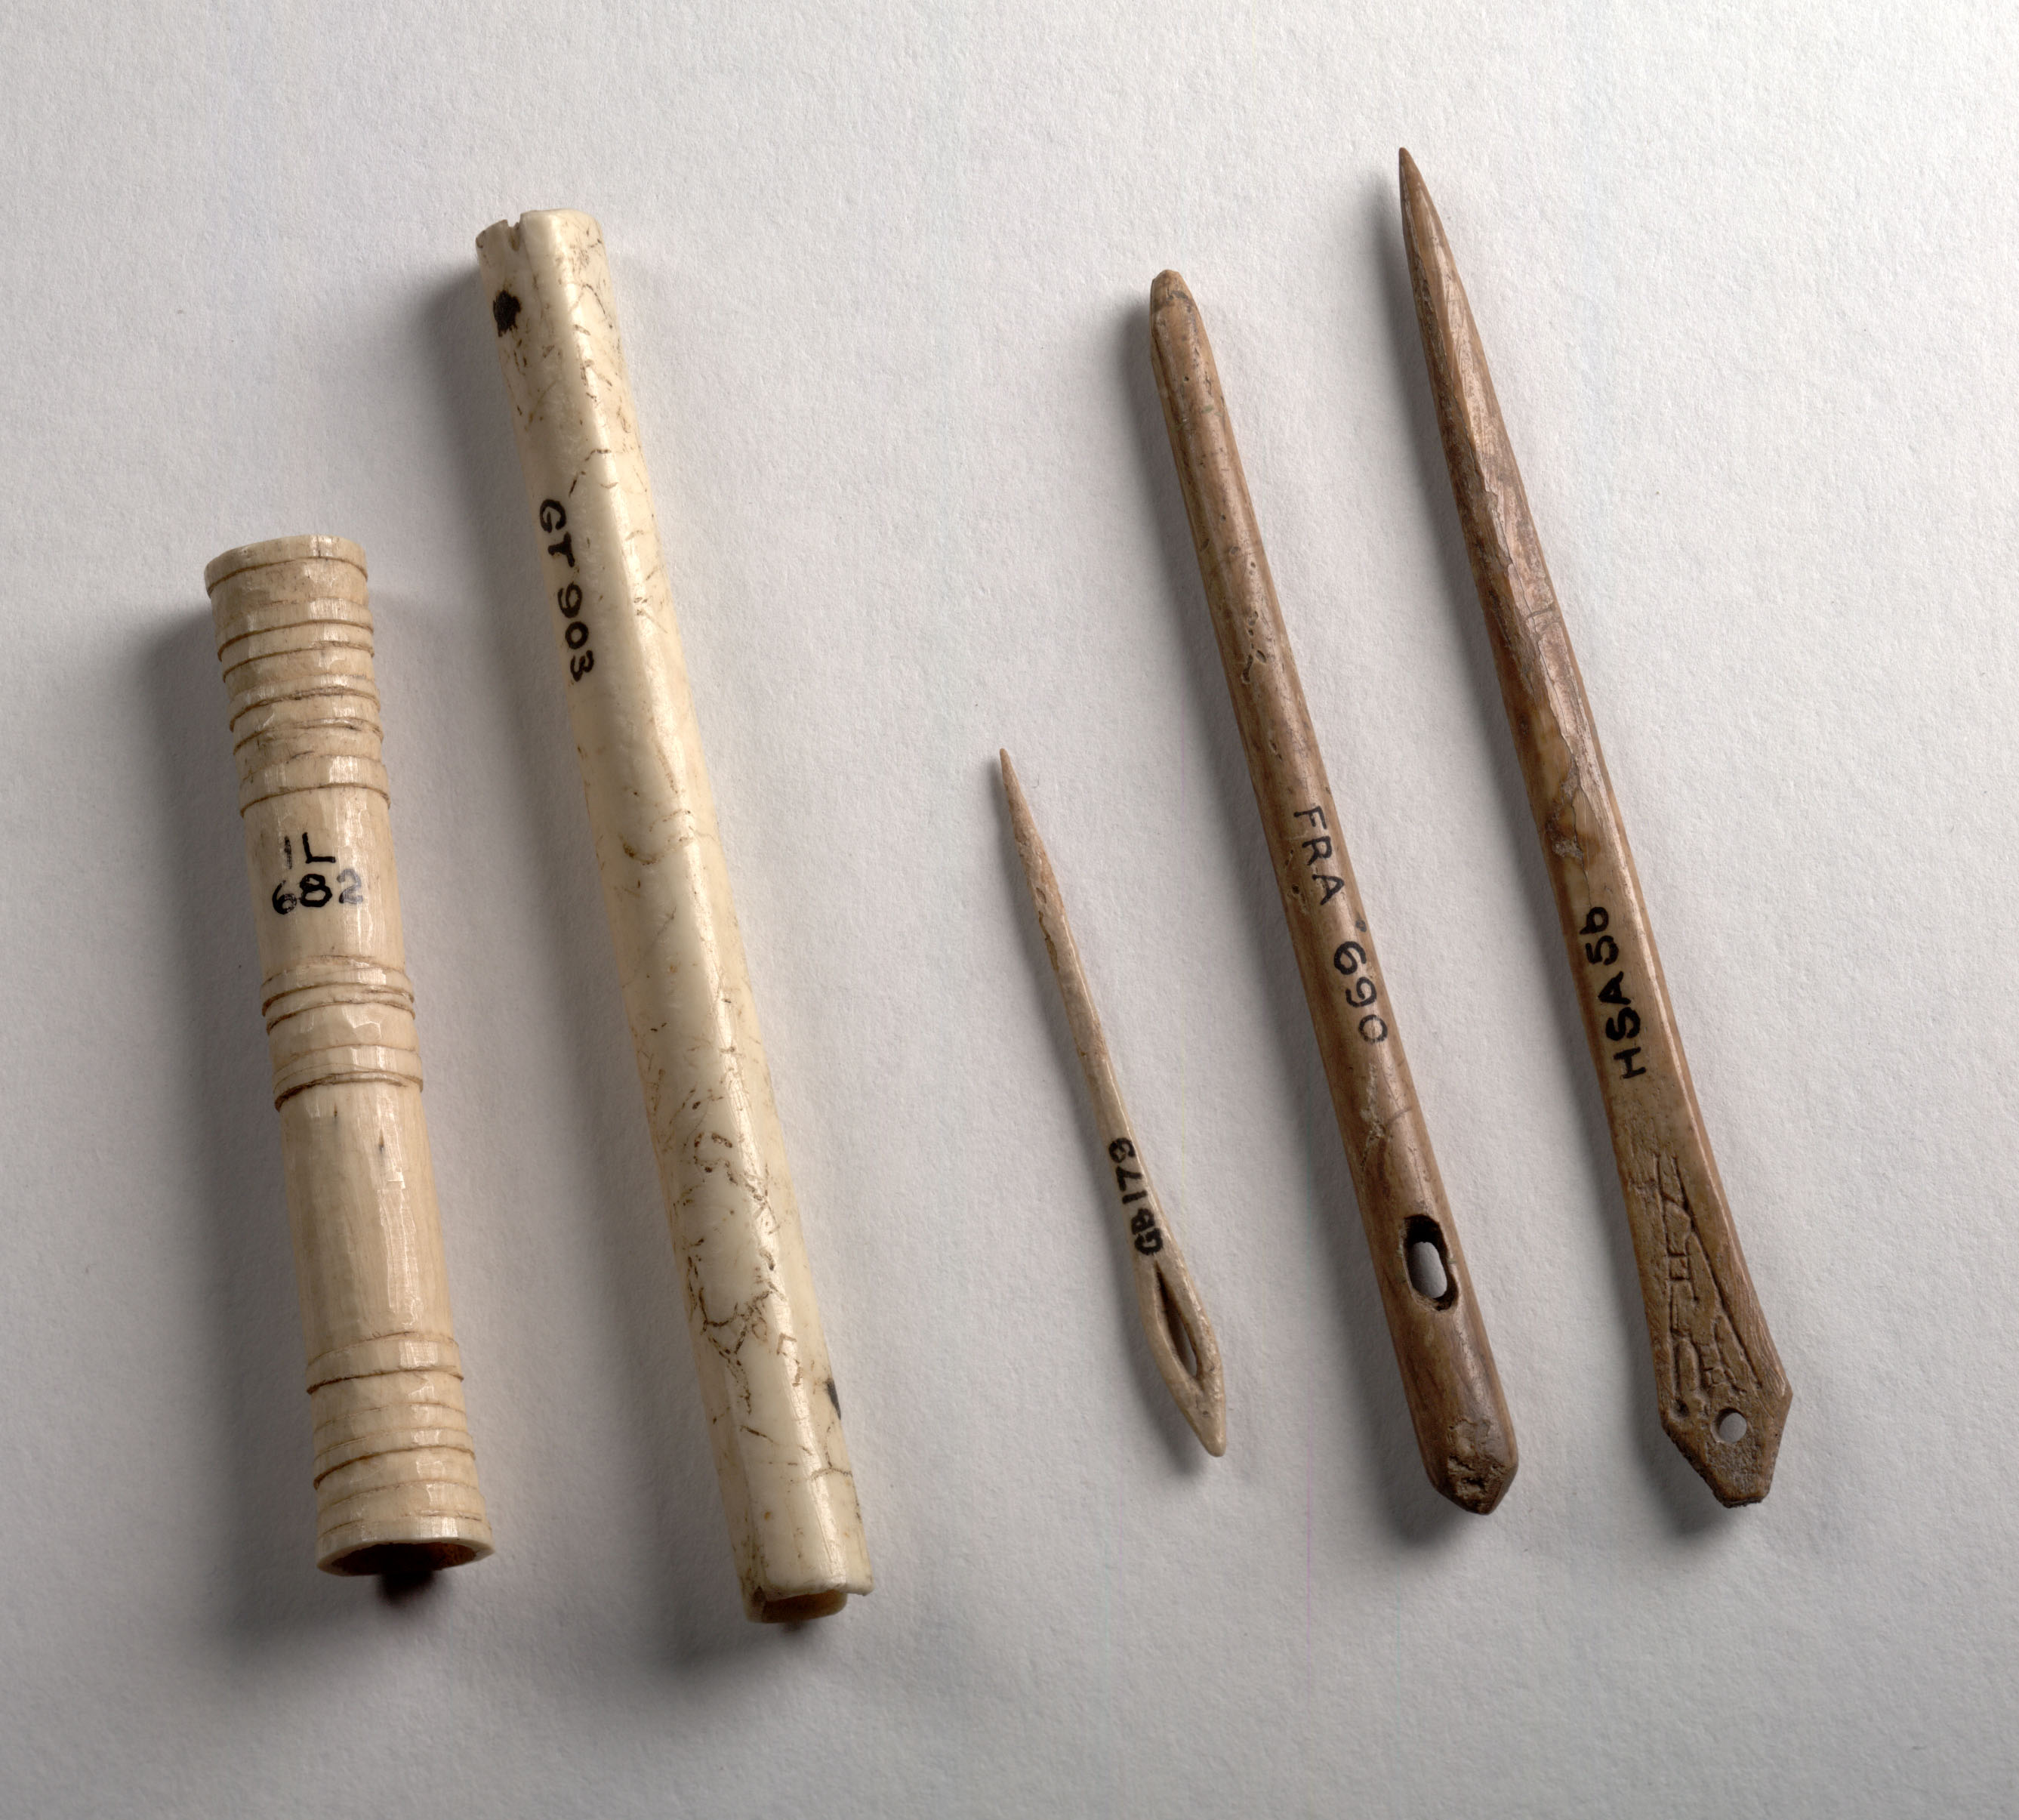 three thin bone needles of different sizes and two cylindrical cases to hold them